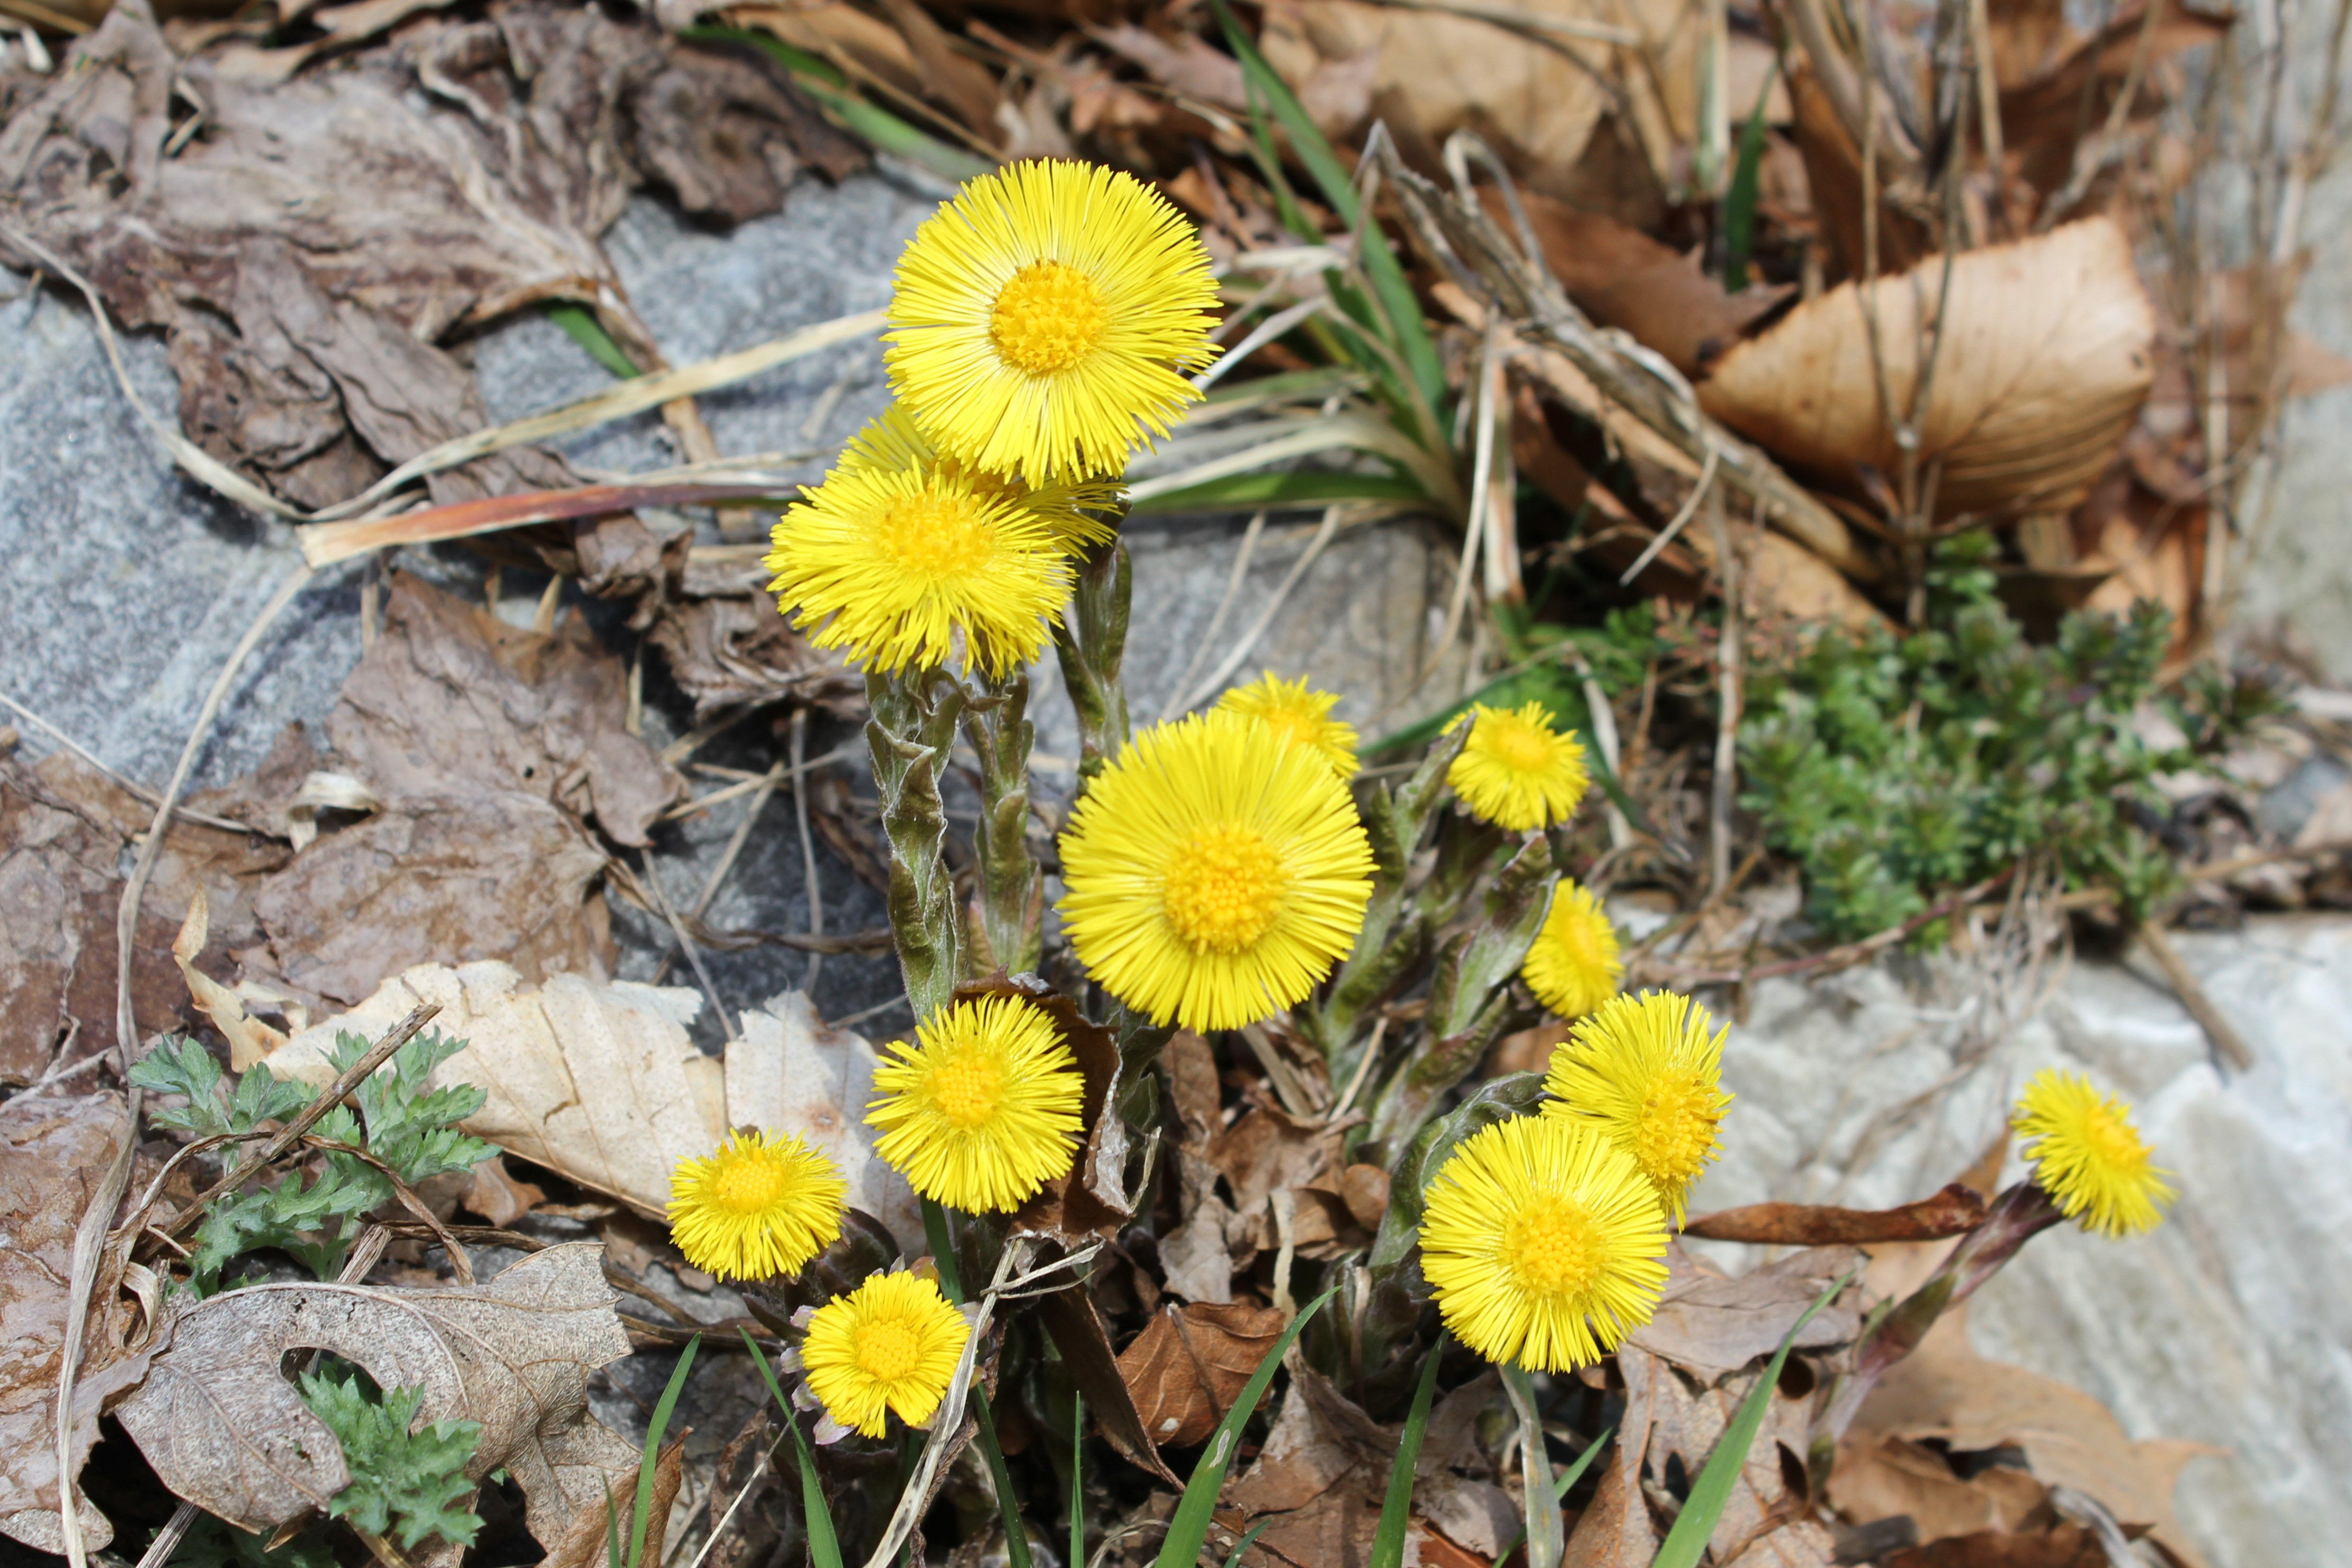 A cluster of wildflowers with yellow centers and tightly packed yellow ray flowers around them.